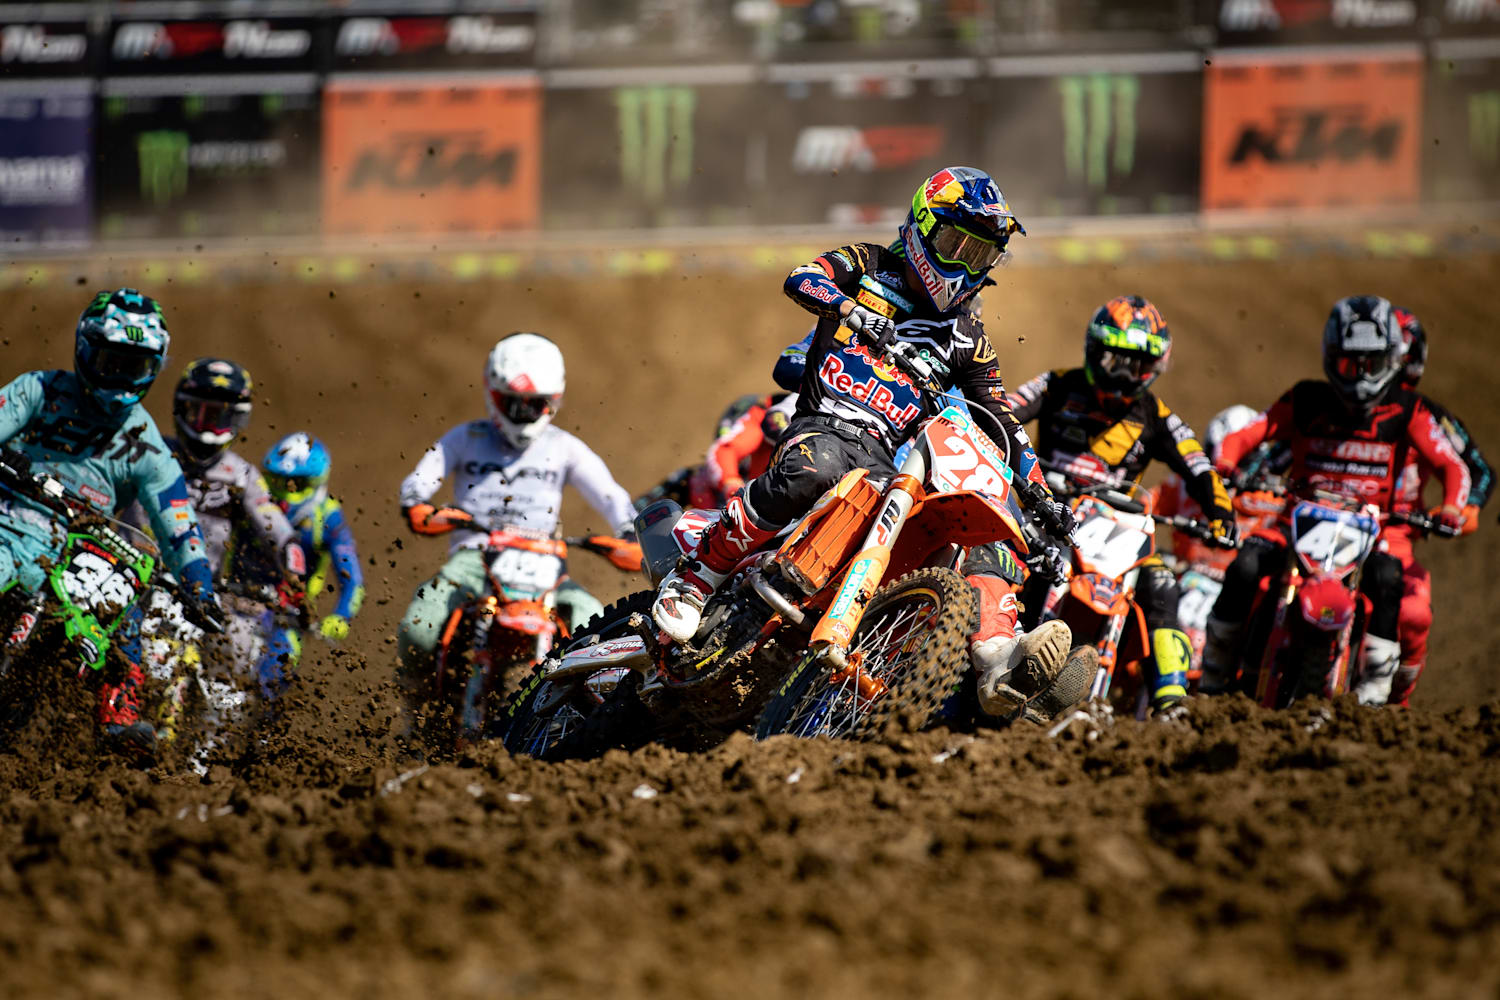 A brief history of motocross racing